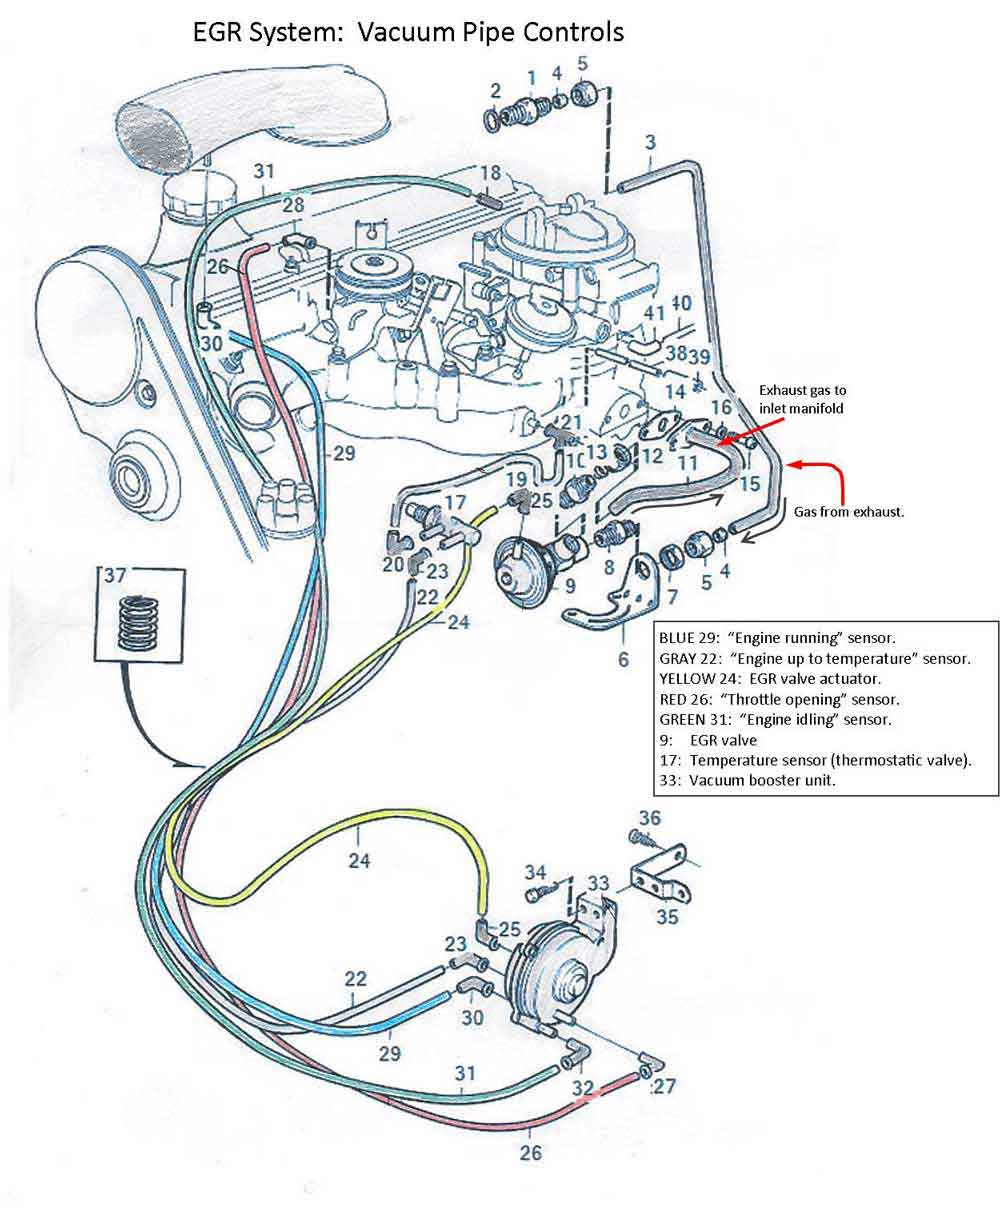 1985 Volvo 240 Engine Wiring Harness: Volvo Vacuum Diagrams